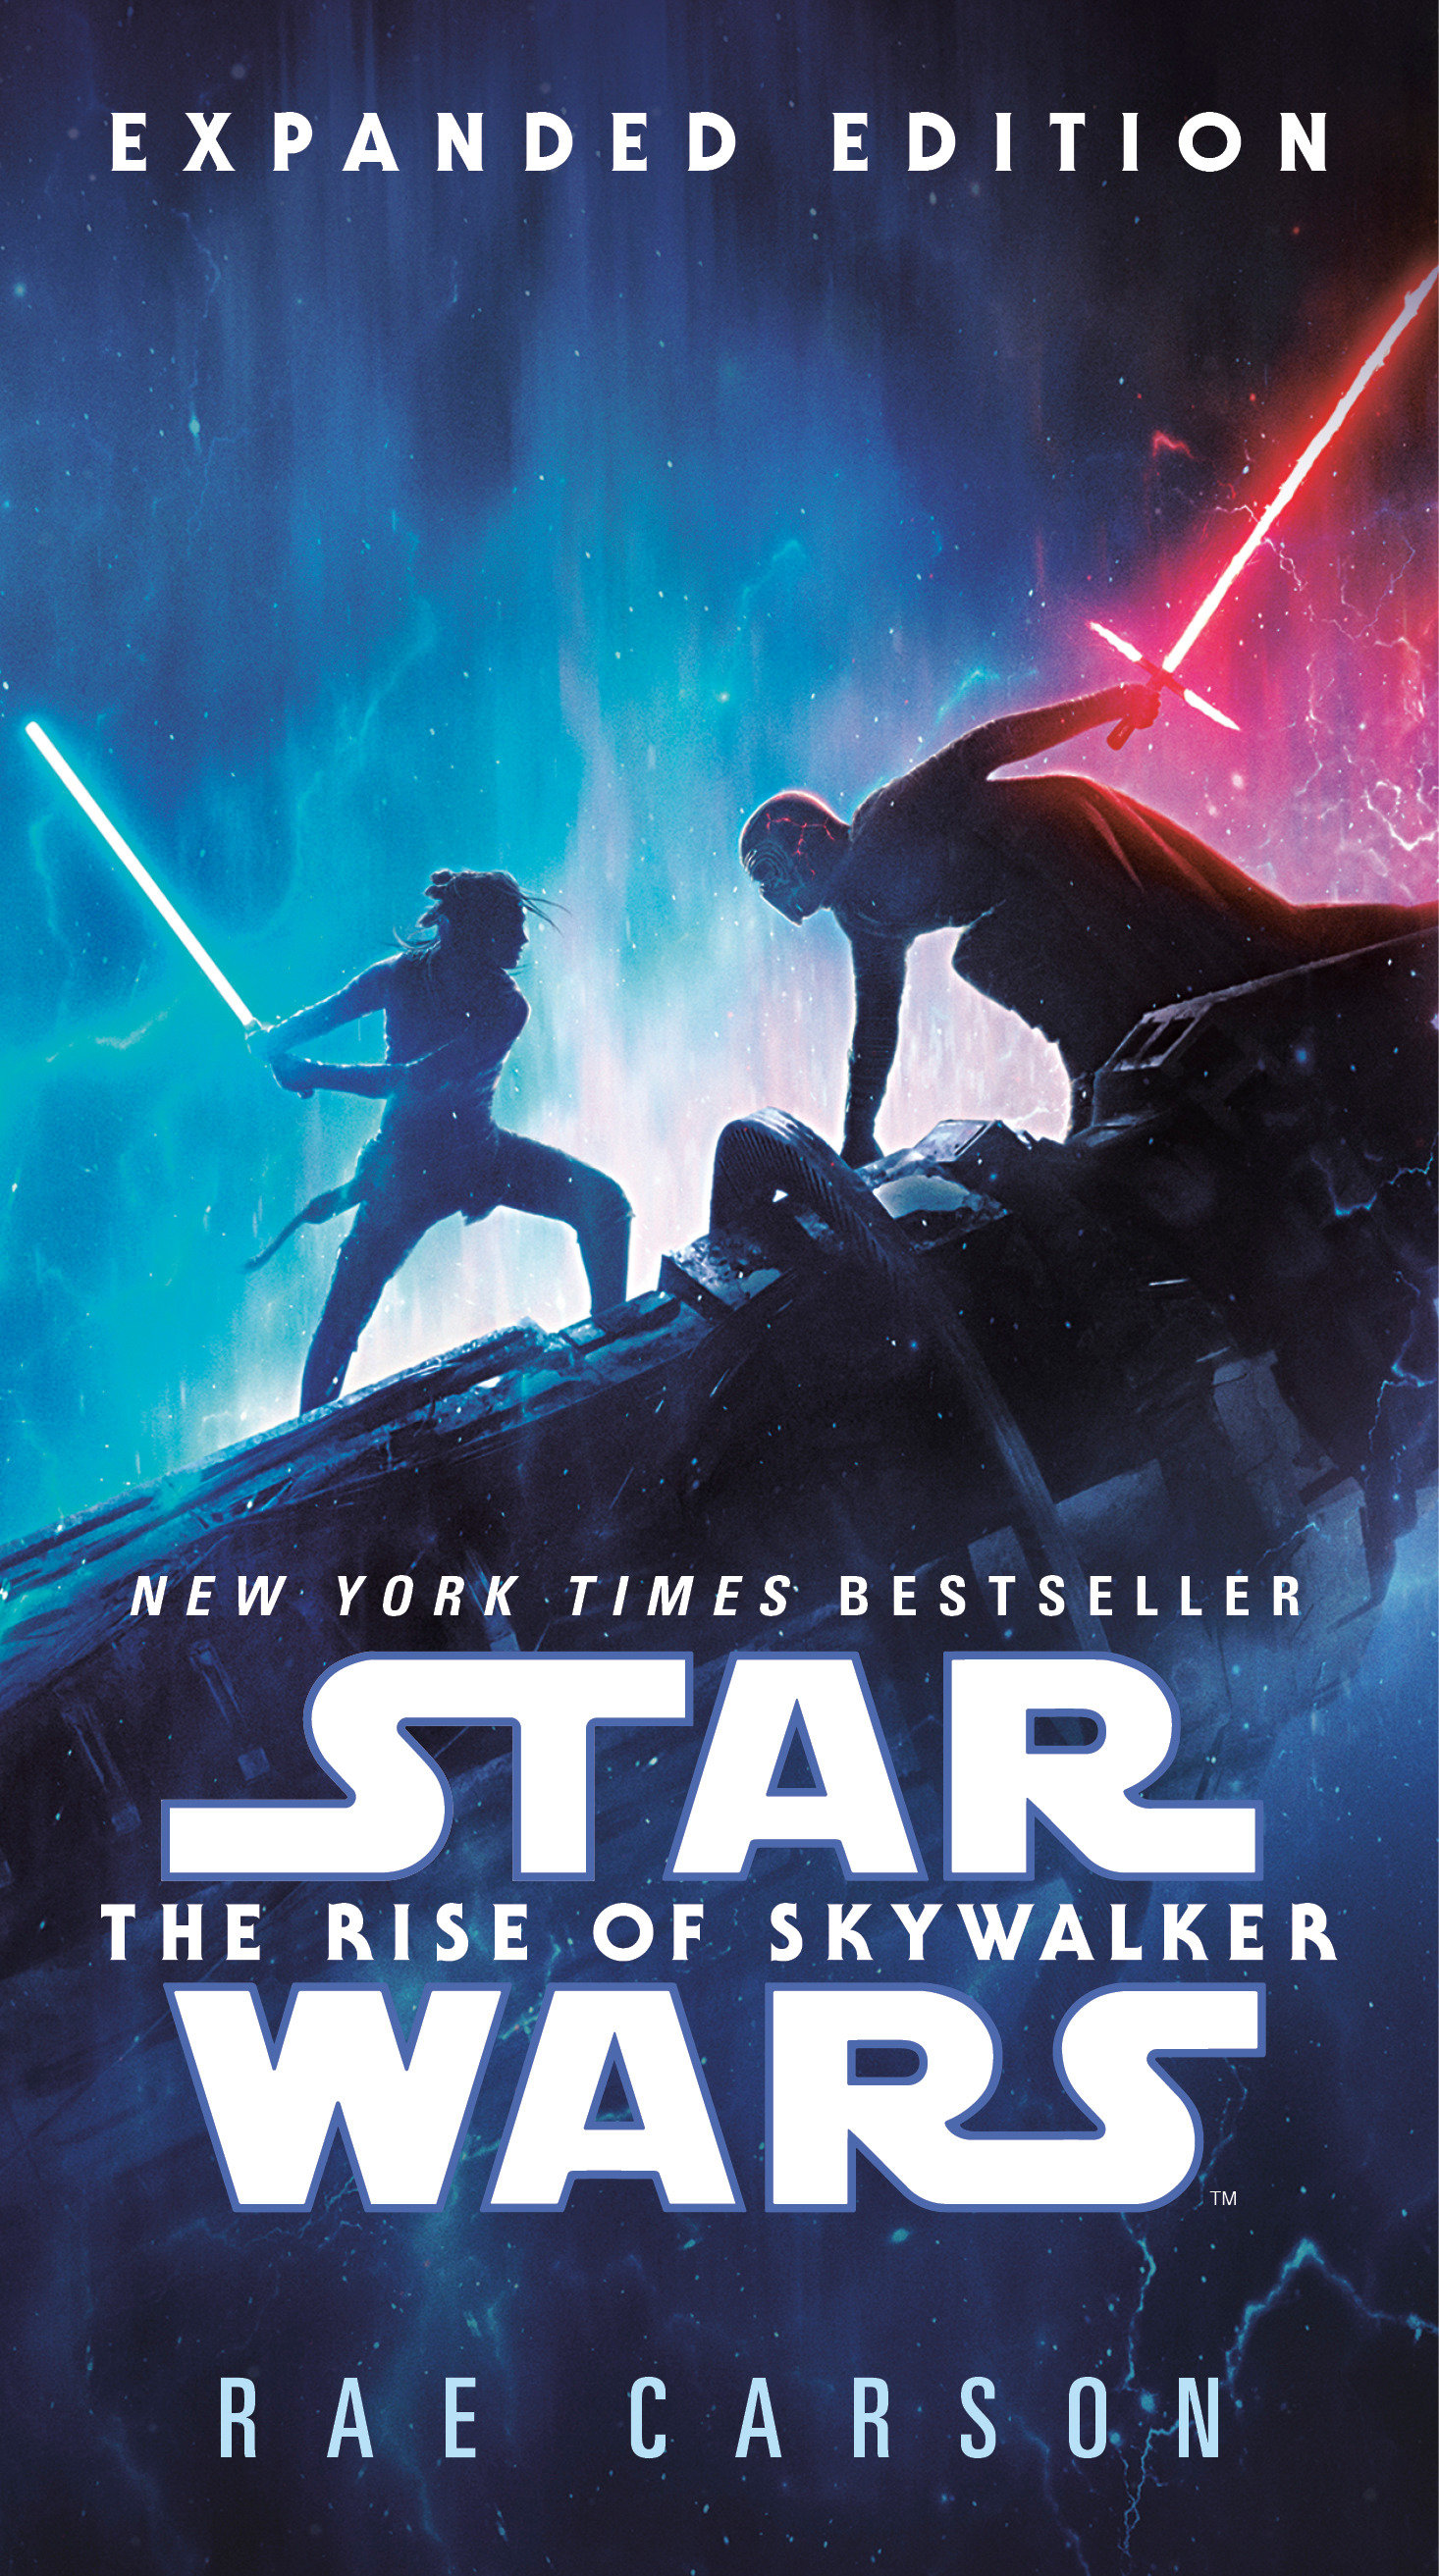 The rise of Skywalker: Expanded Edition (Star Wars) cover image